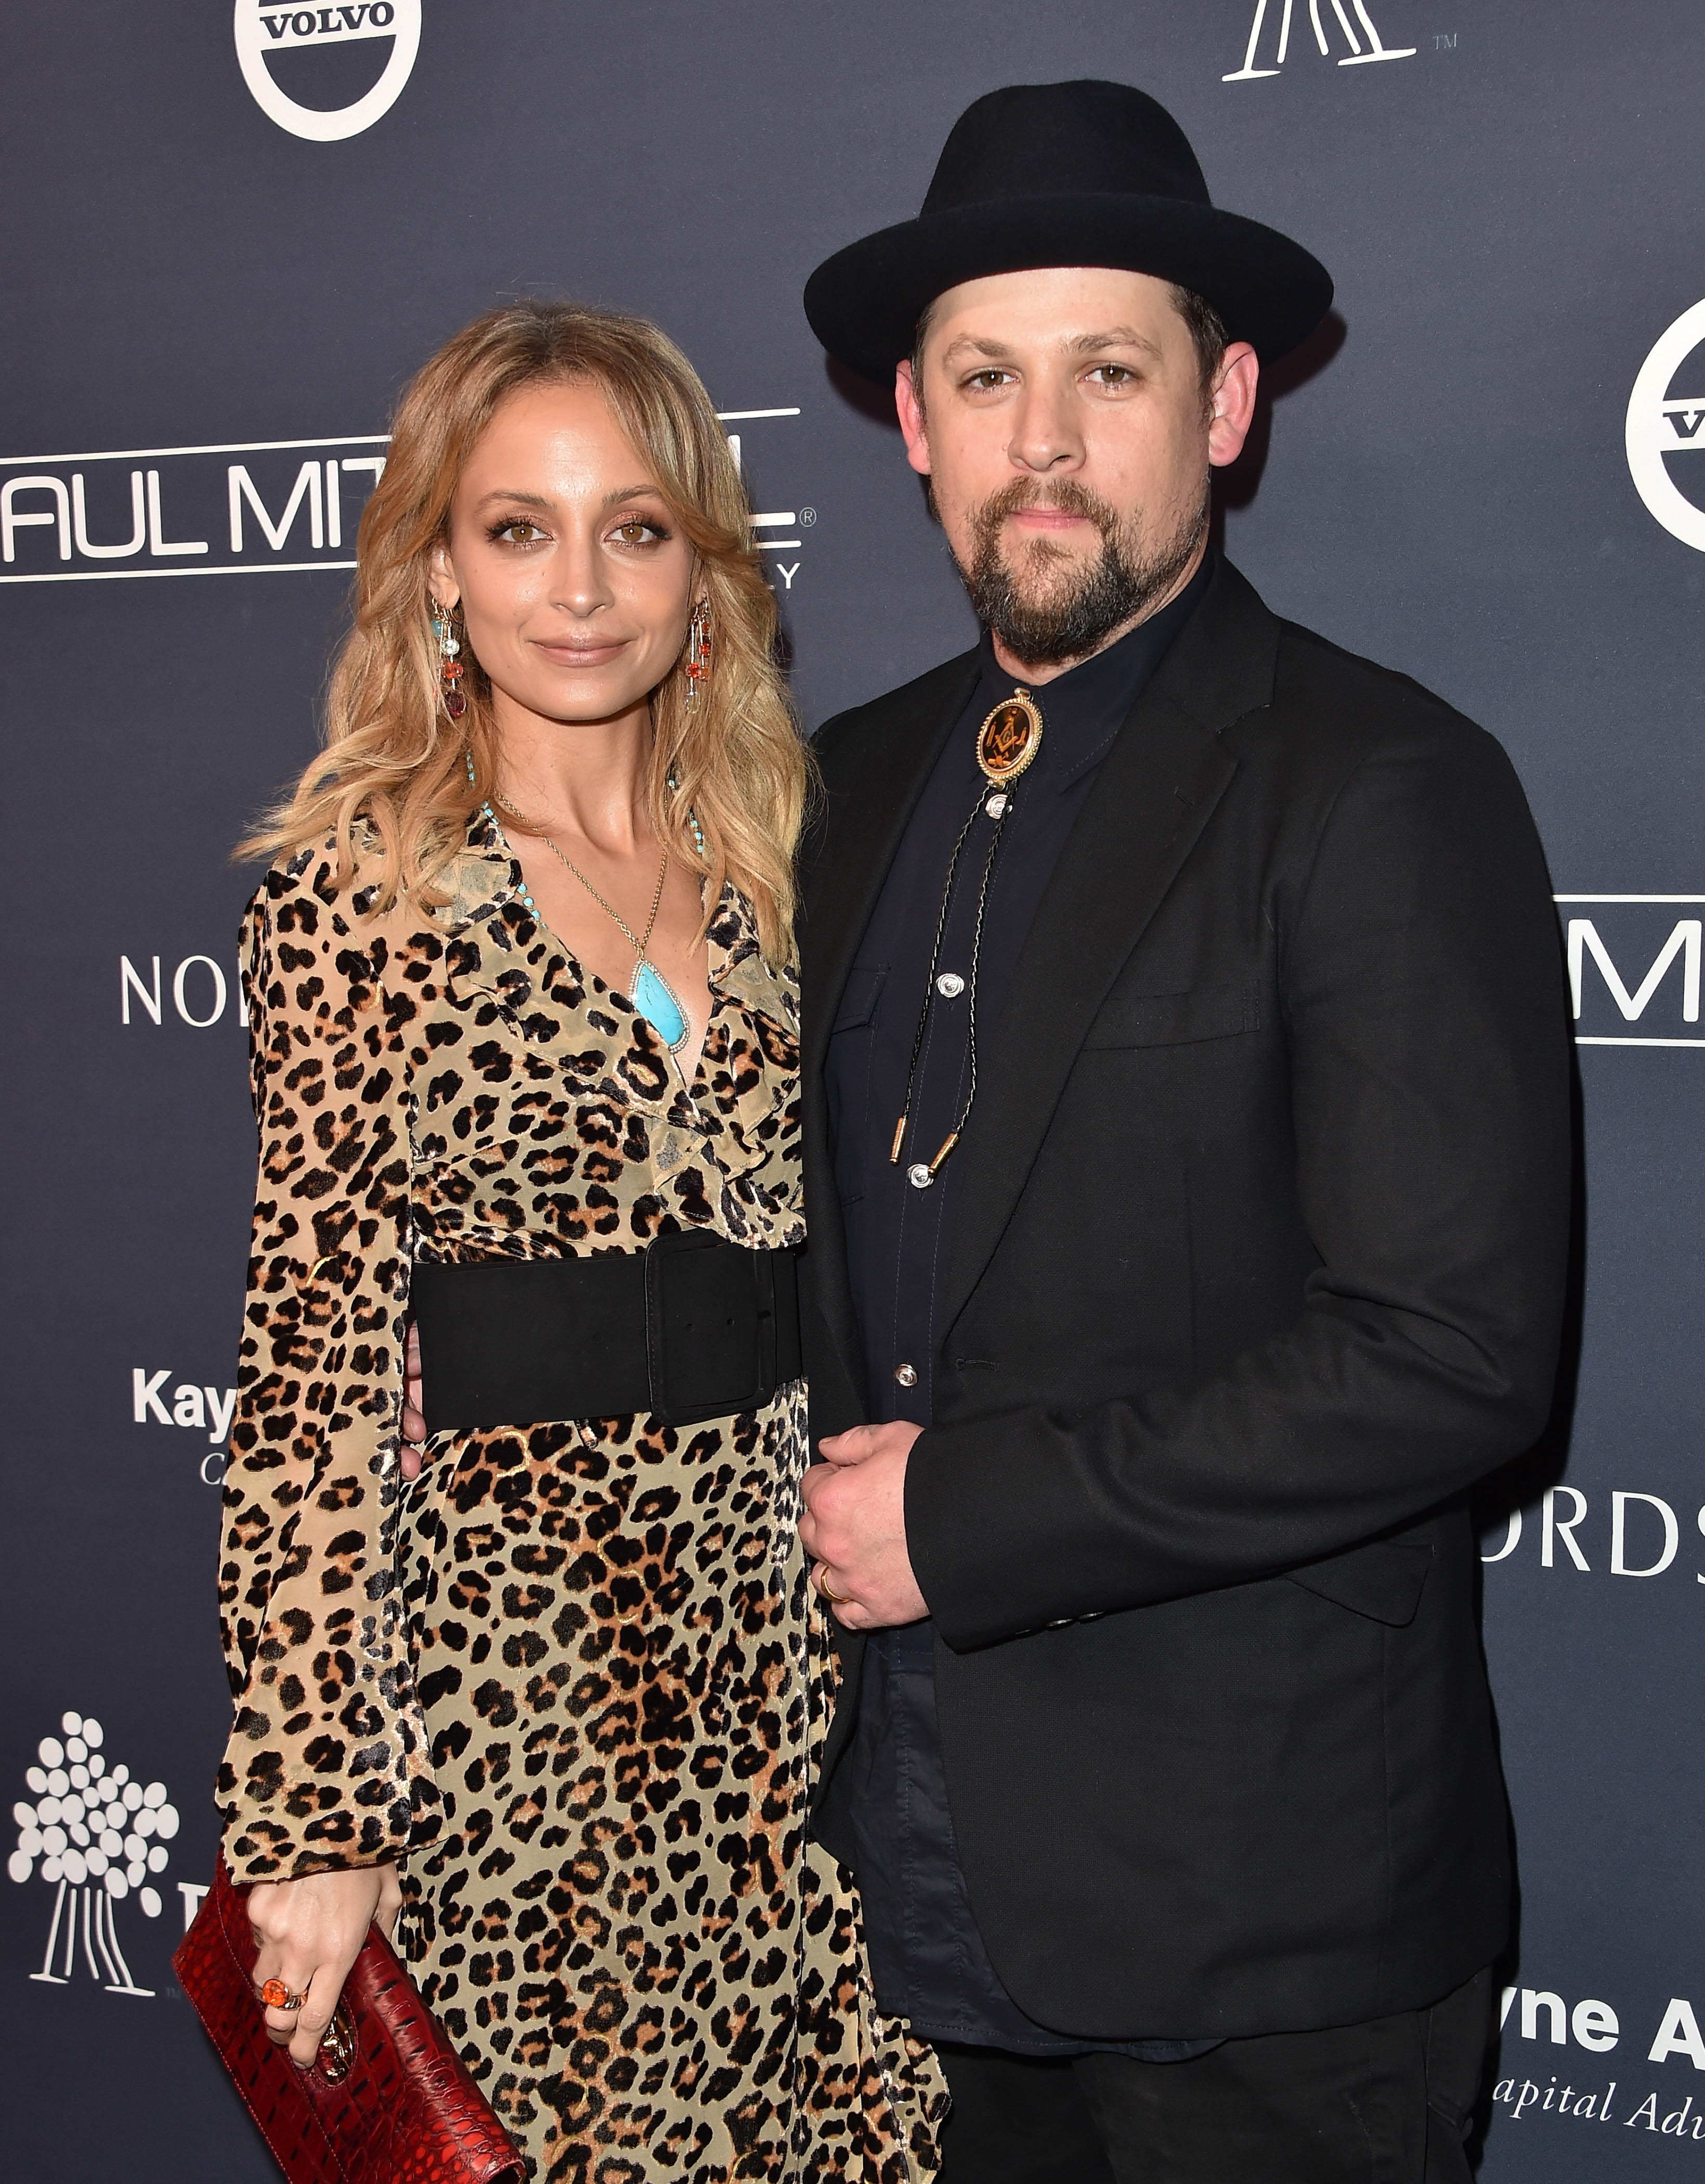 celebrity couple nicole joel black suit leopard print dress